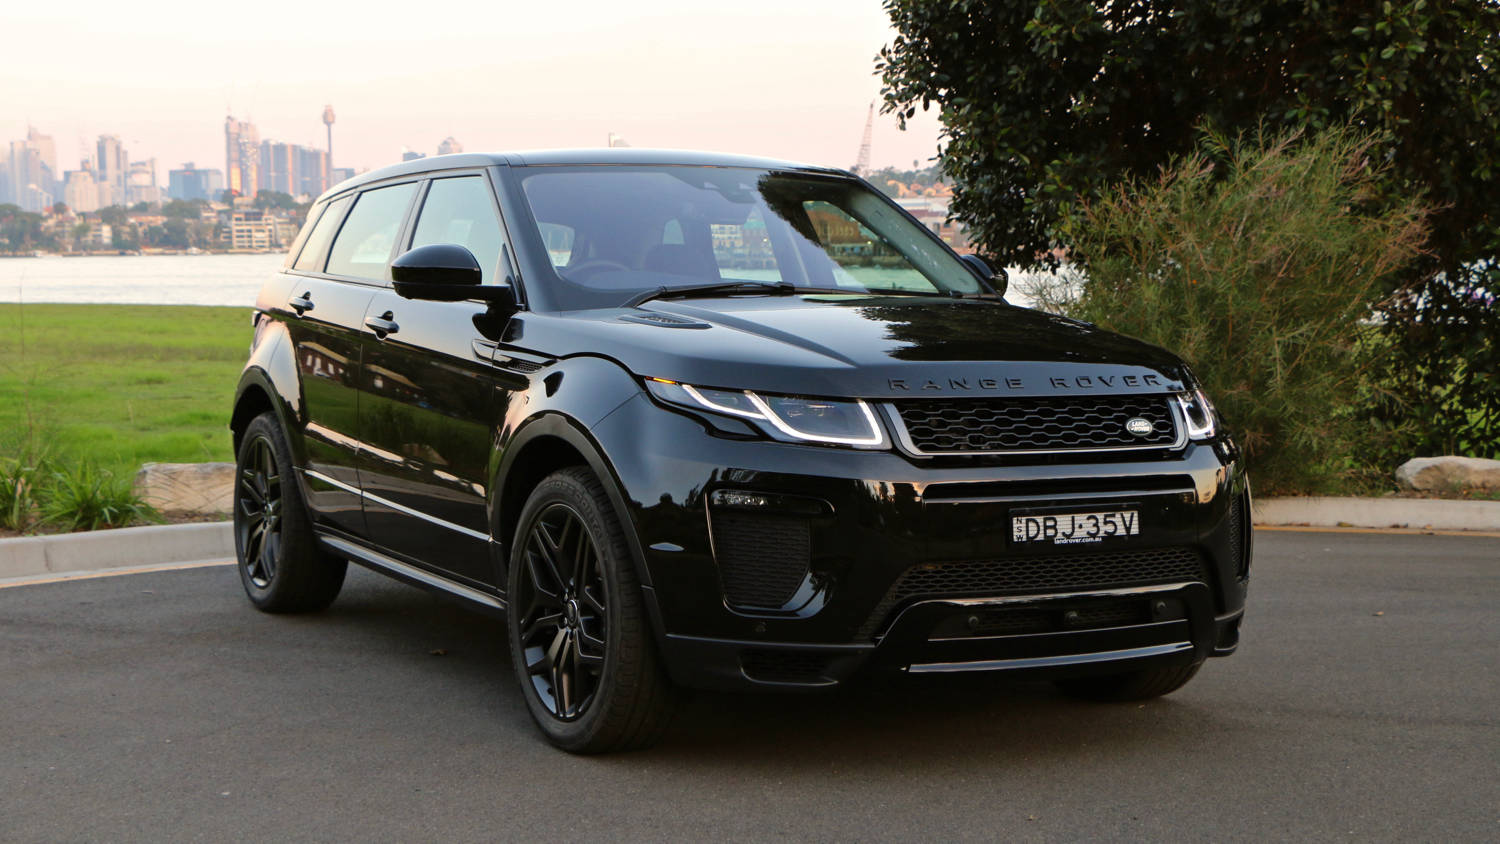 Range Rover Evoque 2016 Review Chasing Cars